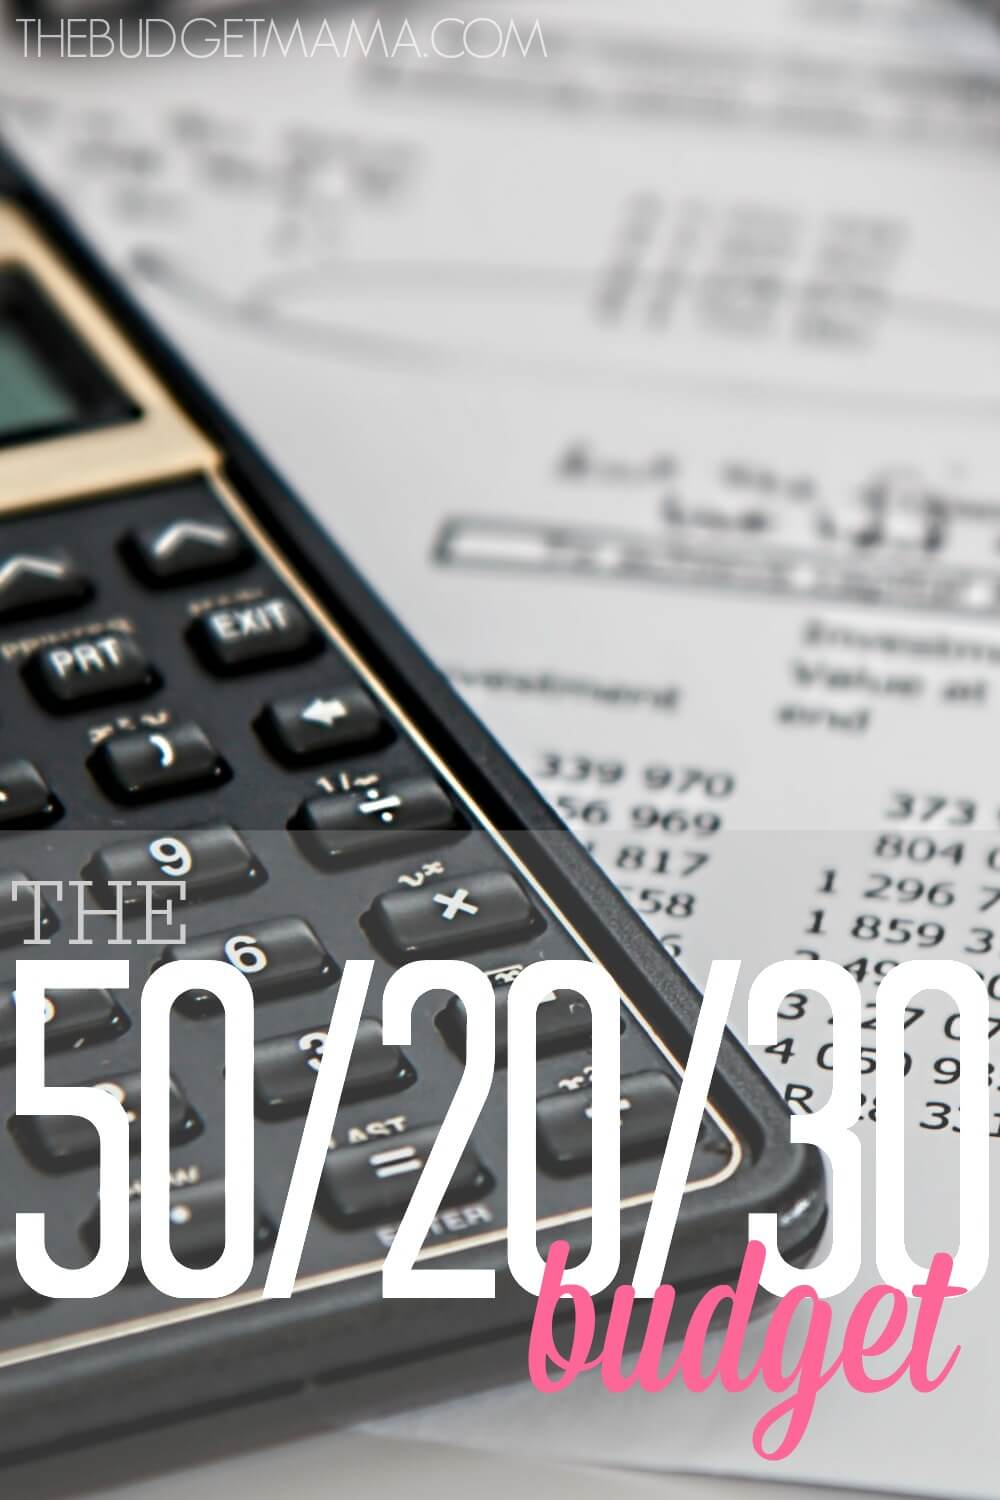 The 50/20/30 budget makes figuring out those budget percentages and categories easier. Start using the 50/20/30 method today and make your budget work!